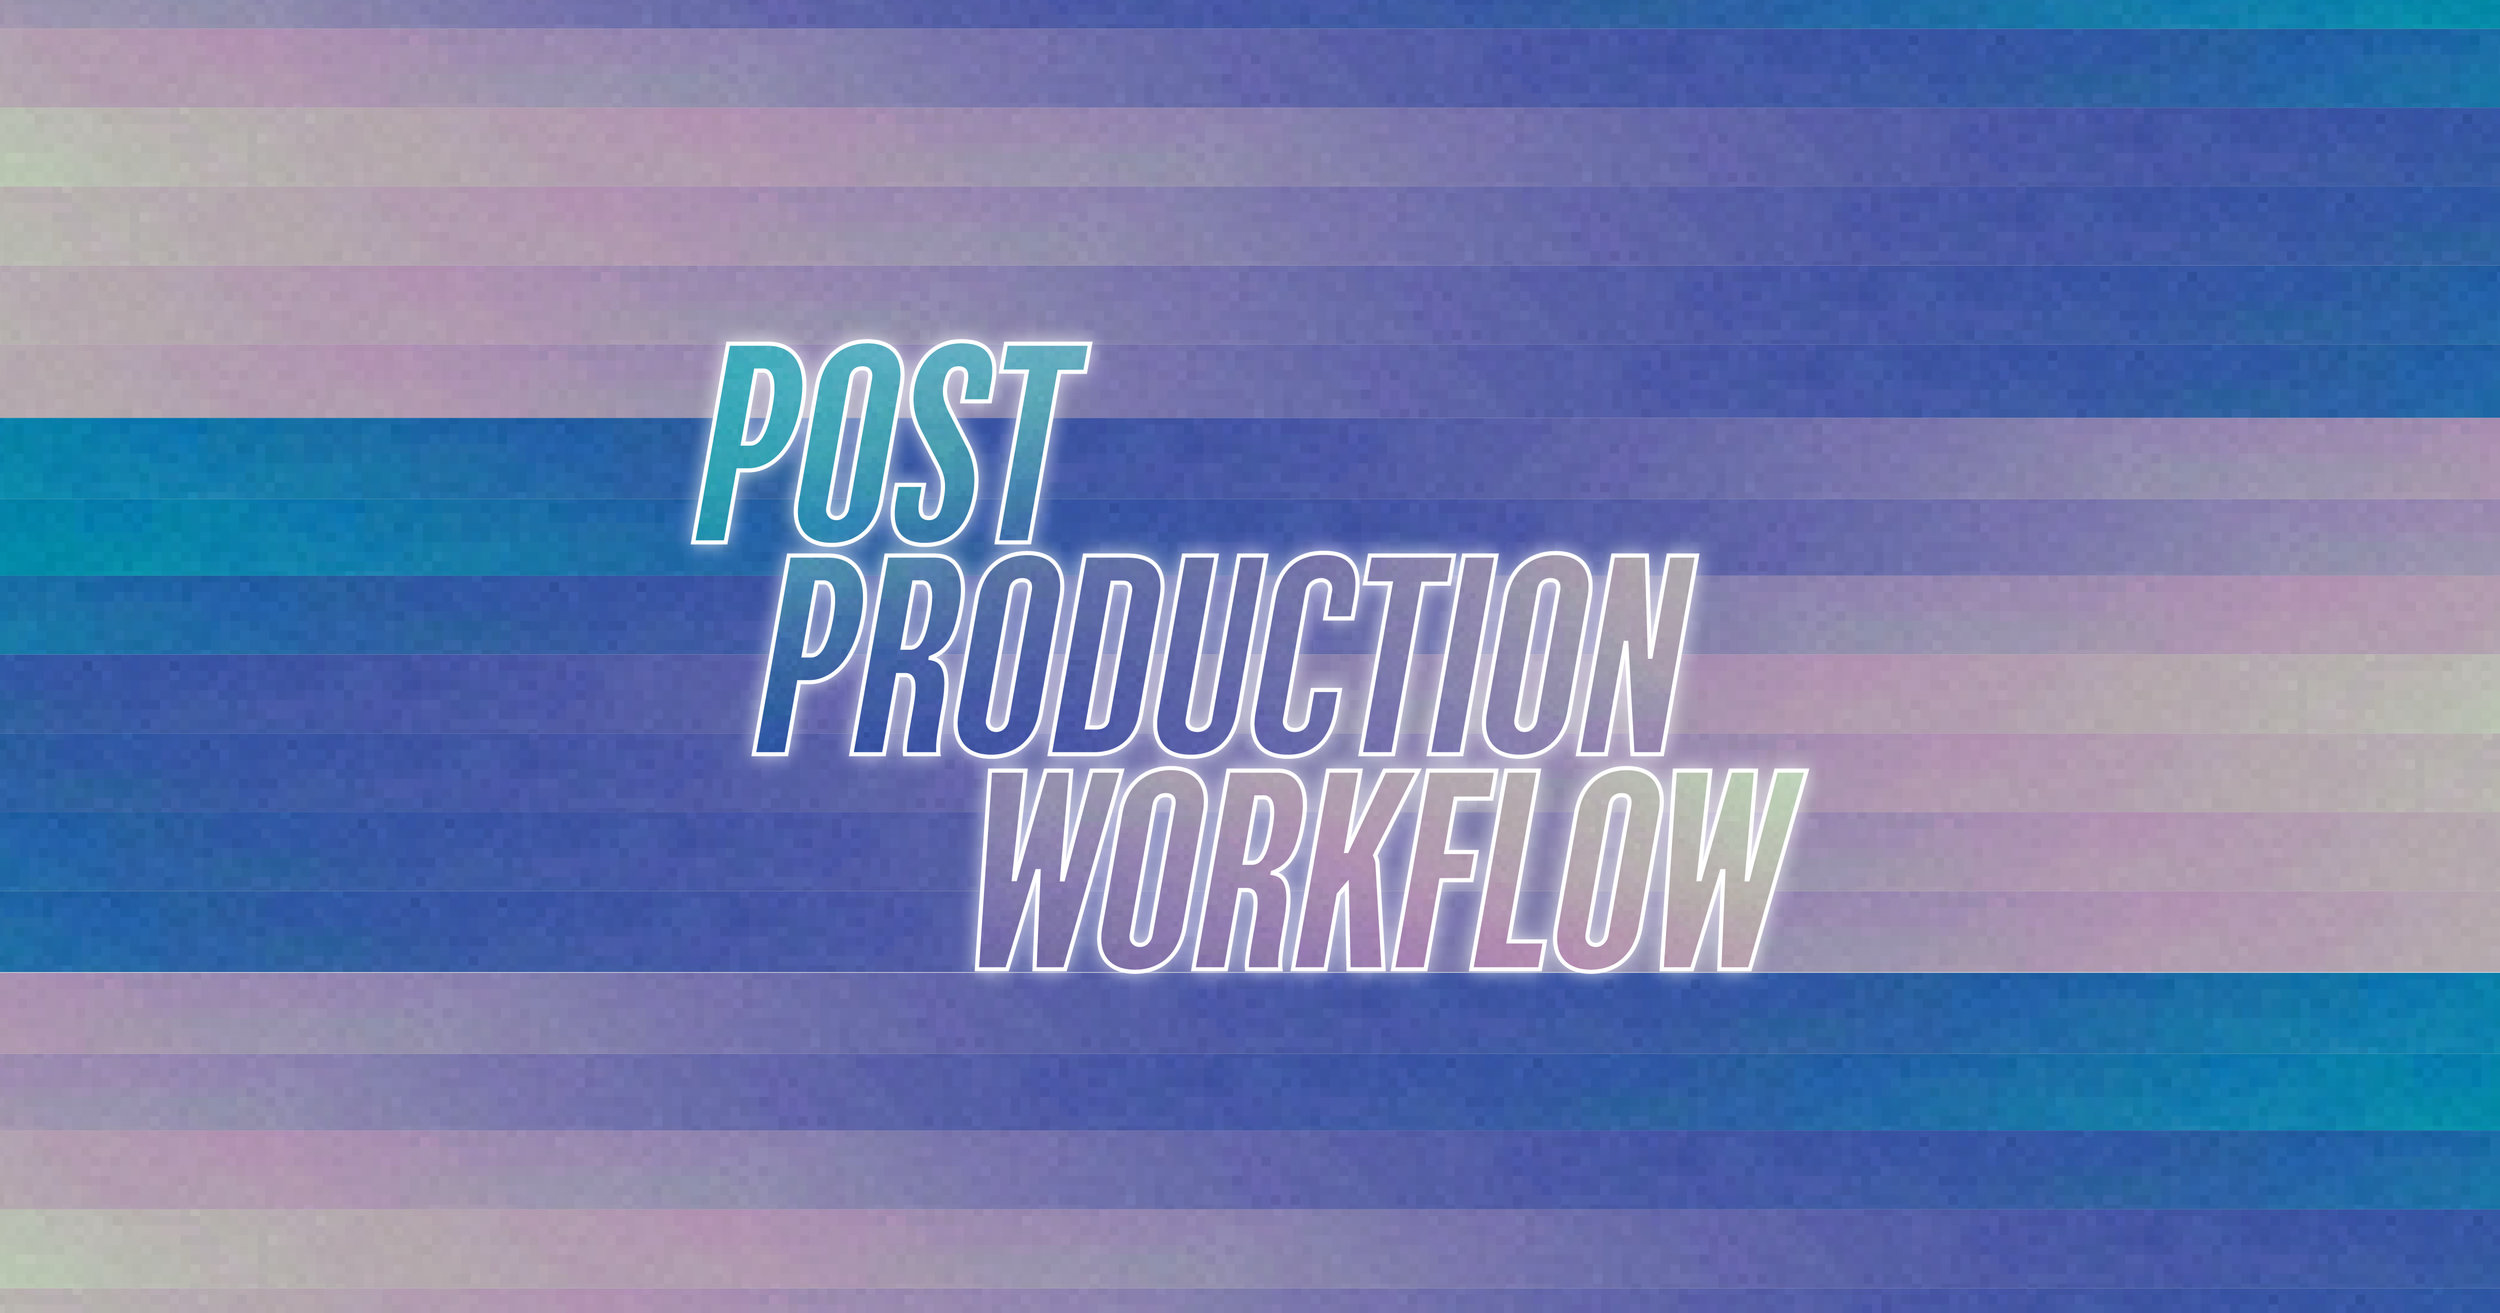 ATLFF-Post_Production_Workflow-Graphic.jpg